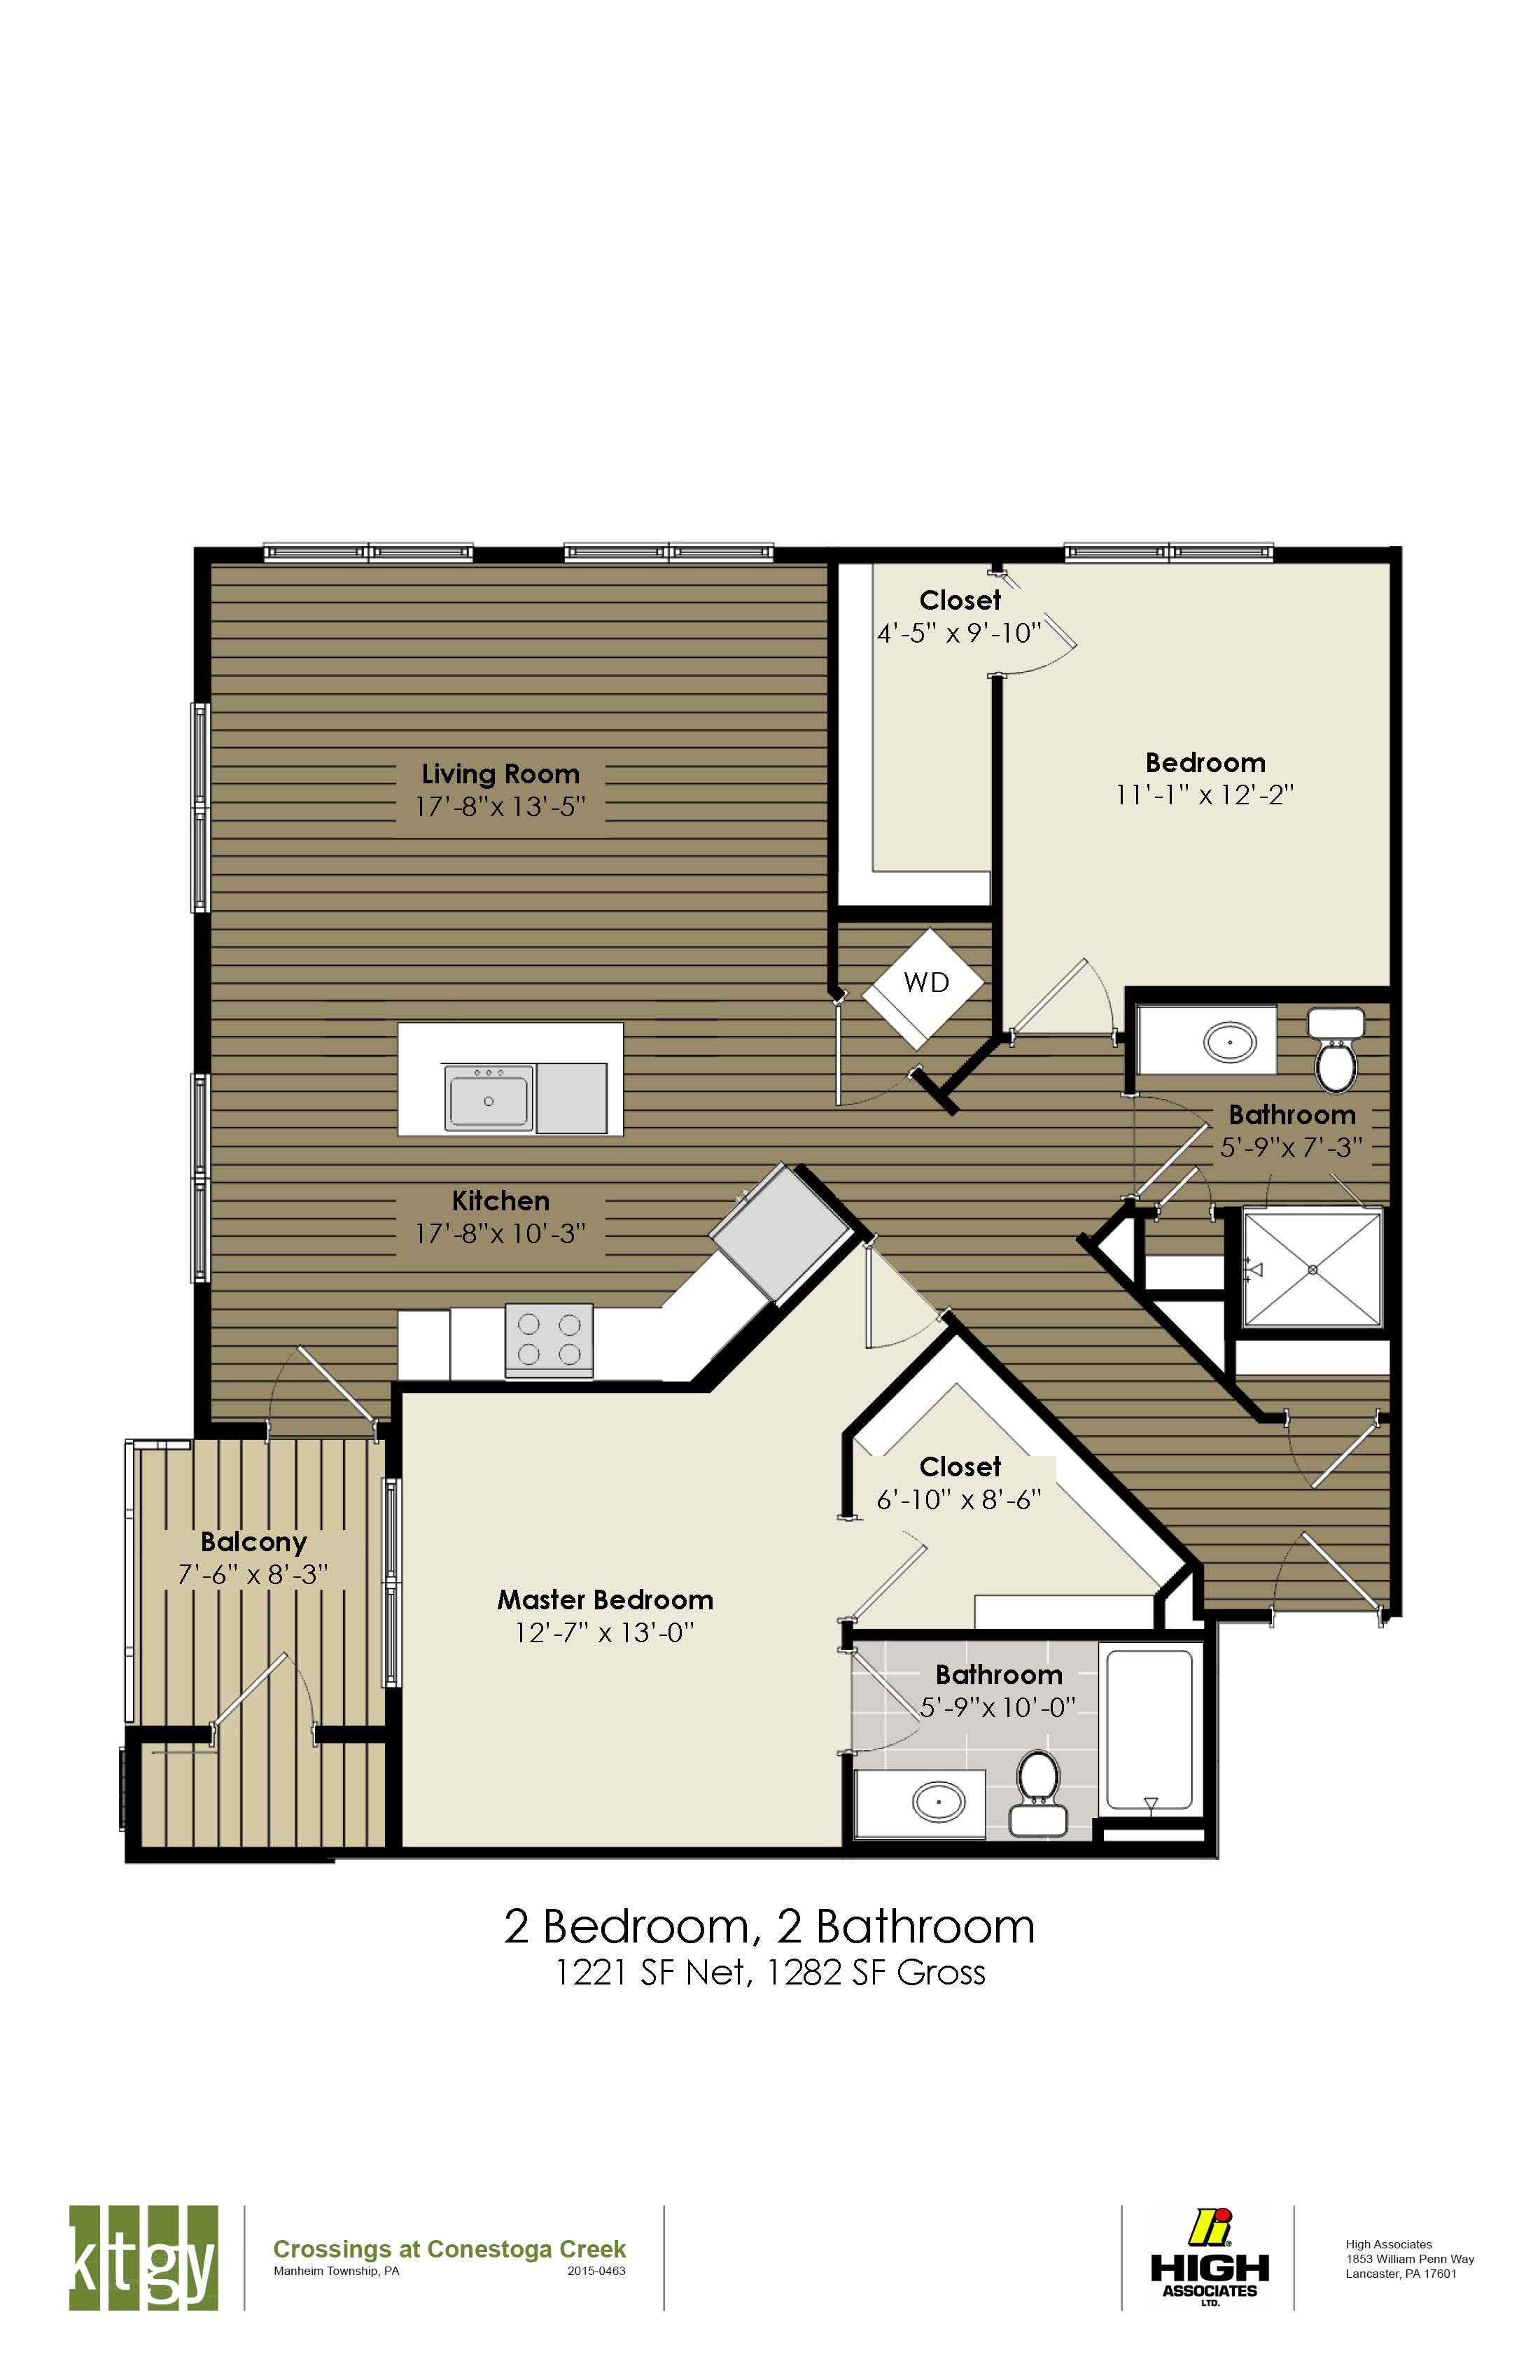 2 Bedroom - Demuth